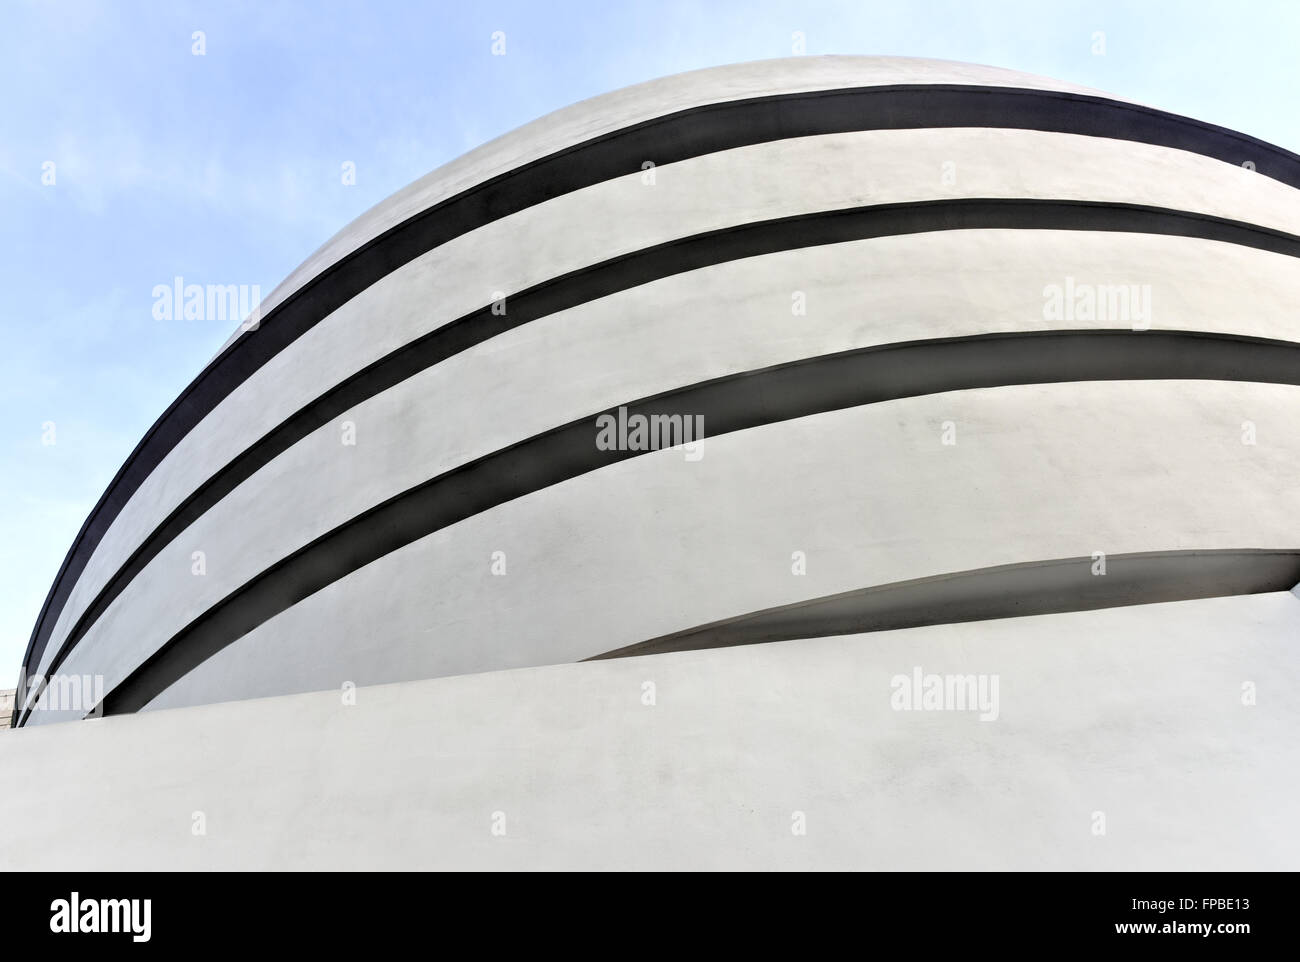 New York City - January 31, 2016: The famous Solomon R. Guggenheim Museum of modern and contemporary art in New - Stock Image